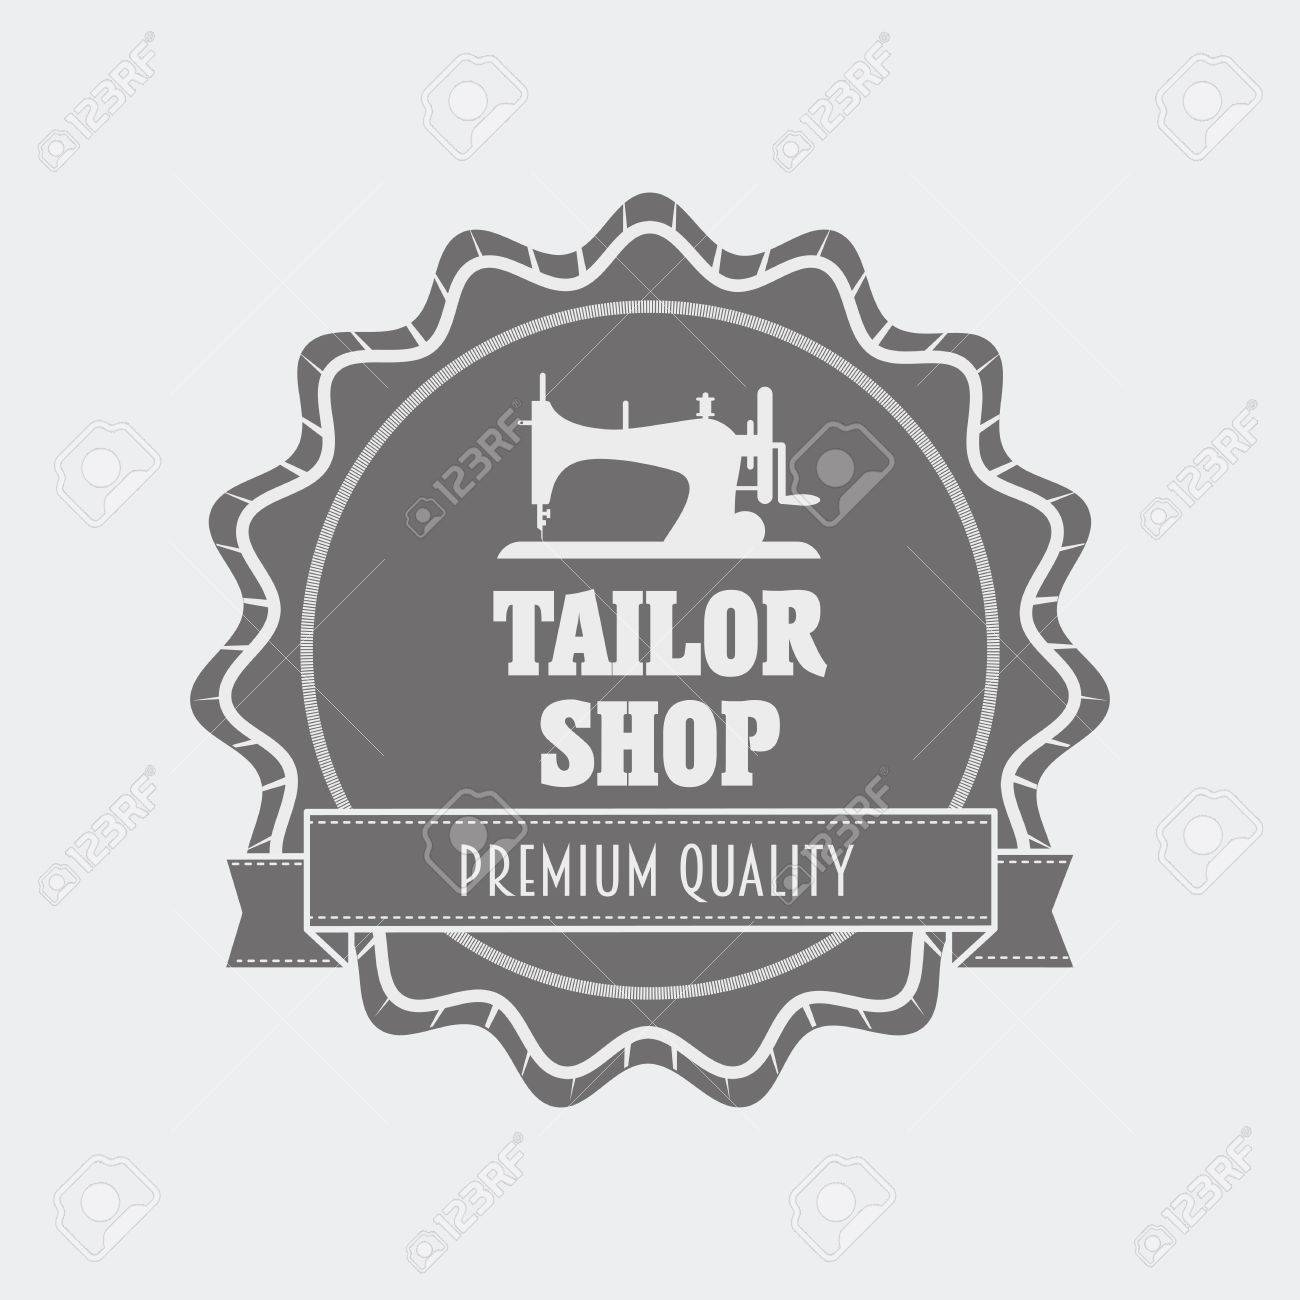 Retro Tailor Shop Label Design Template With Sewing Machine Royalty ...